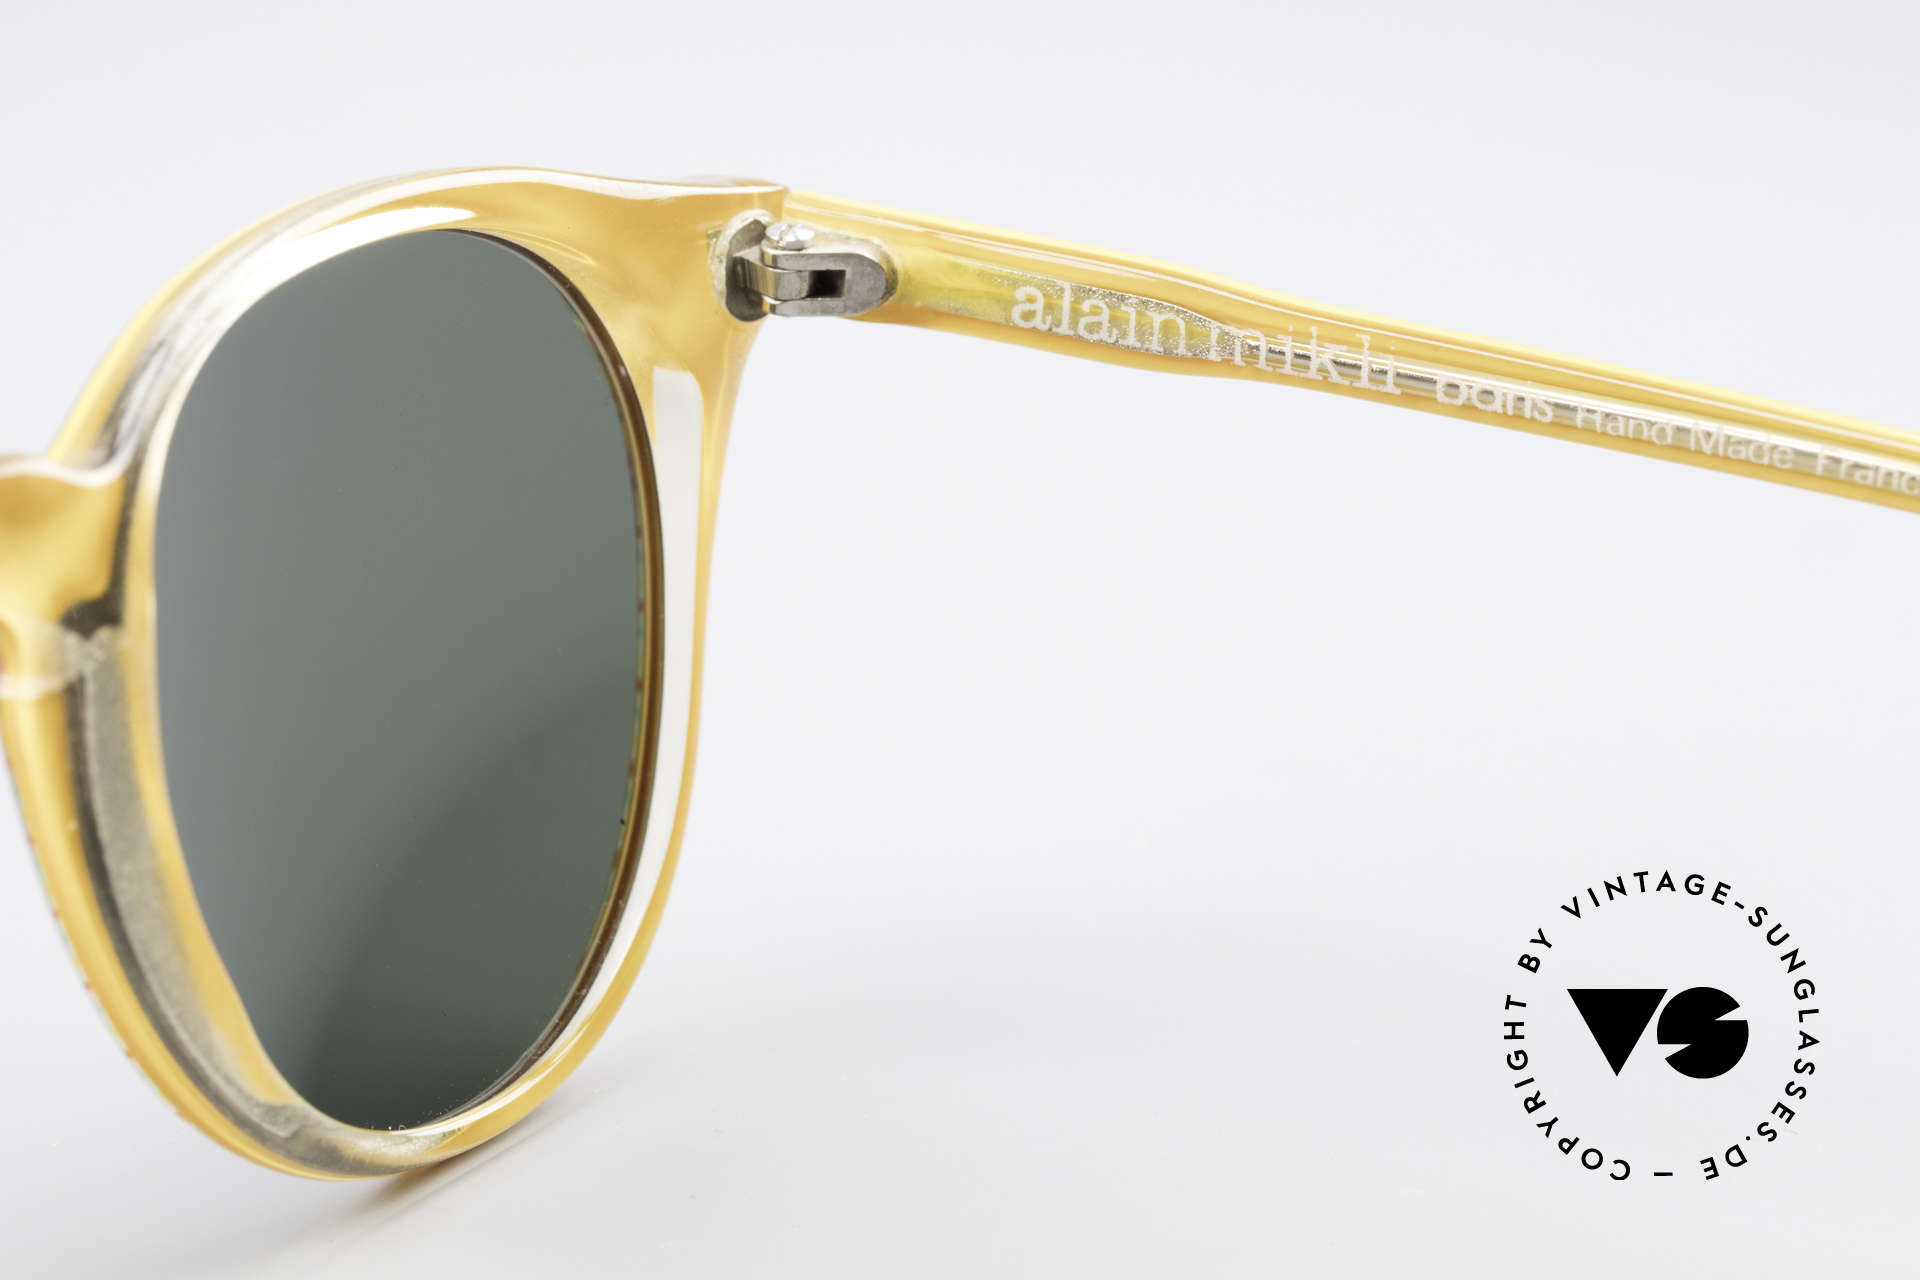 Alain Mikli 034 / 210 Designer Panto Sunglasses, NO RETRO shades, but an old ORIGINAL from 1989, Made for Men and Women